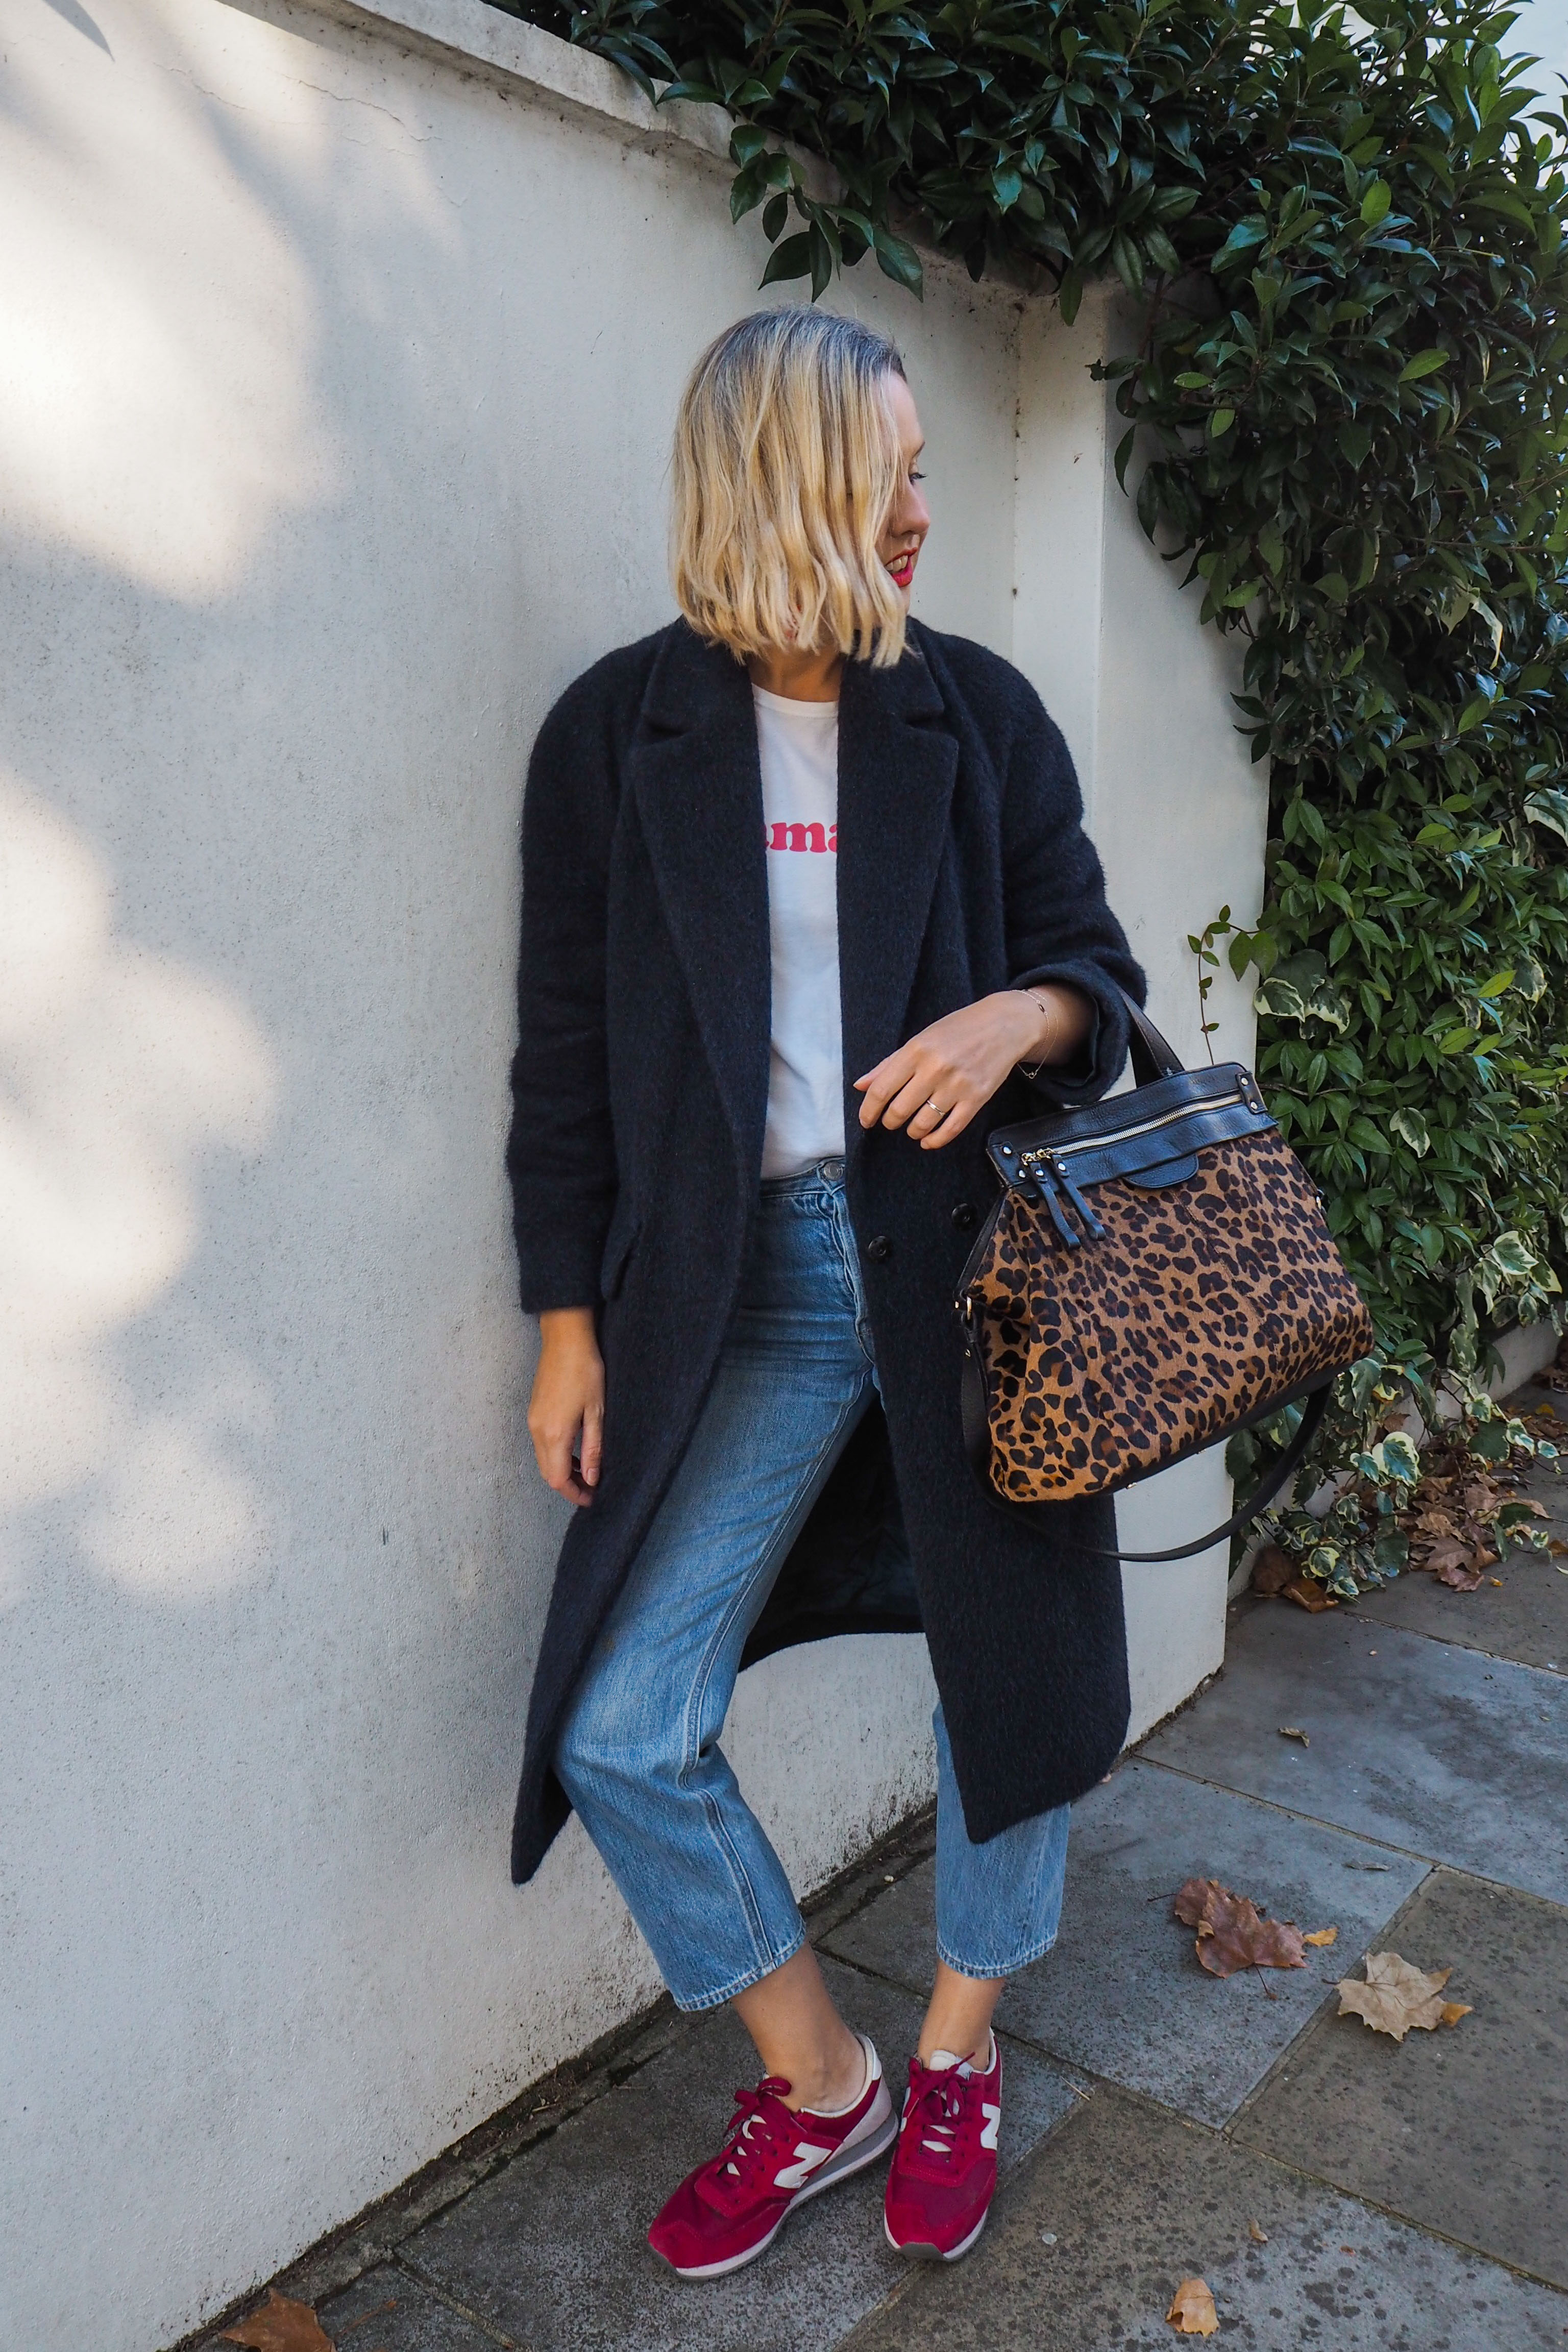 482b7220184 Coat  Whistles (old but buy similar from M S here). Tee  Sezane (old). Jeans   Gap (old). Bag  £360